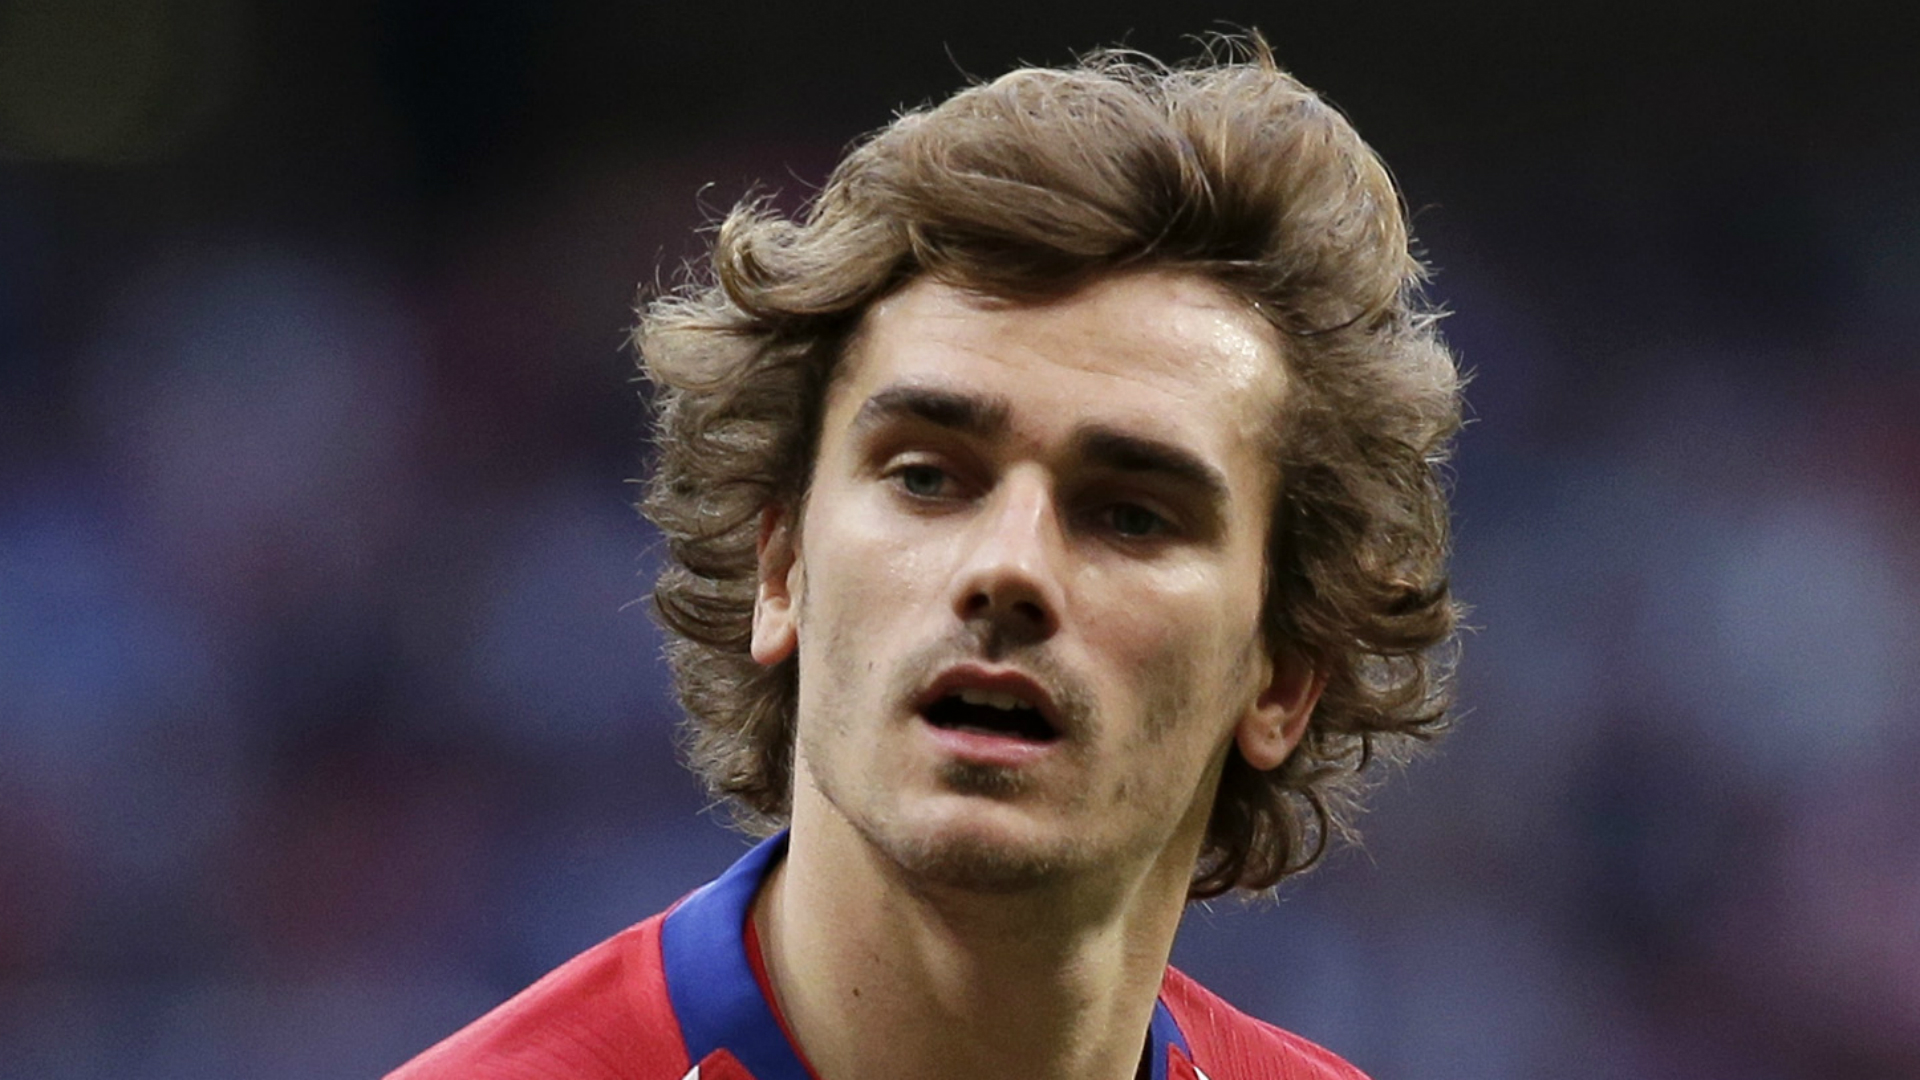 Griezmann 'disappointed' by Atletico attitude following Barcelona move